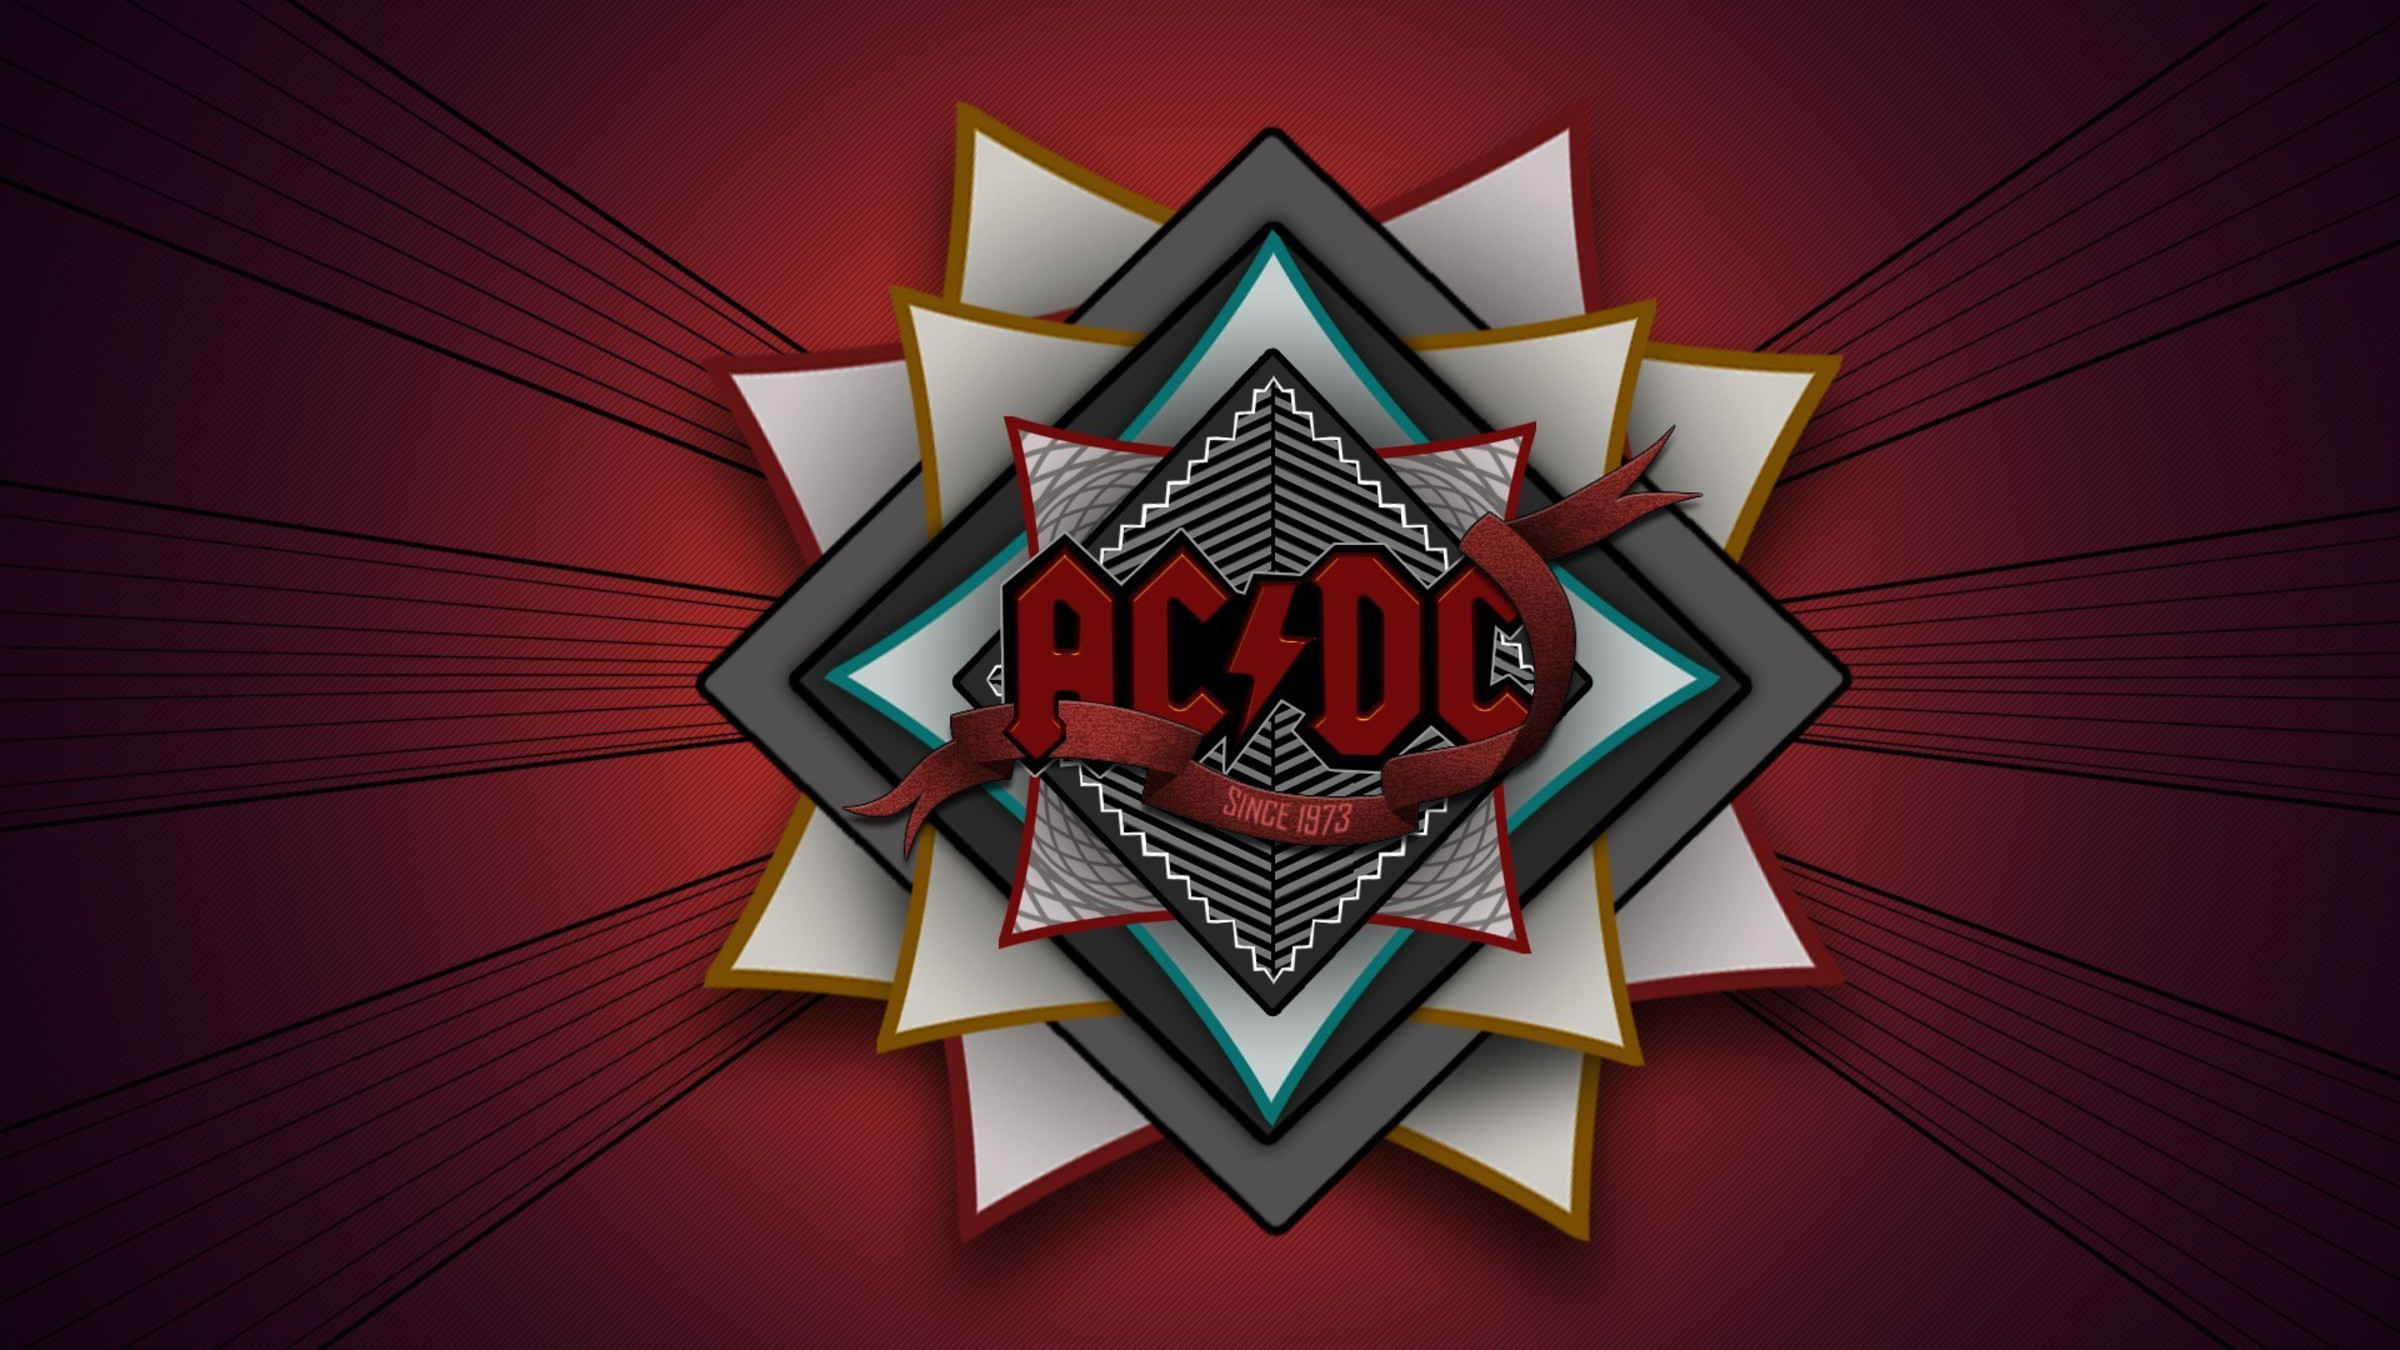 Ac Dc Rock Band Digital Art Hard Logos Wallpaper